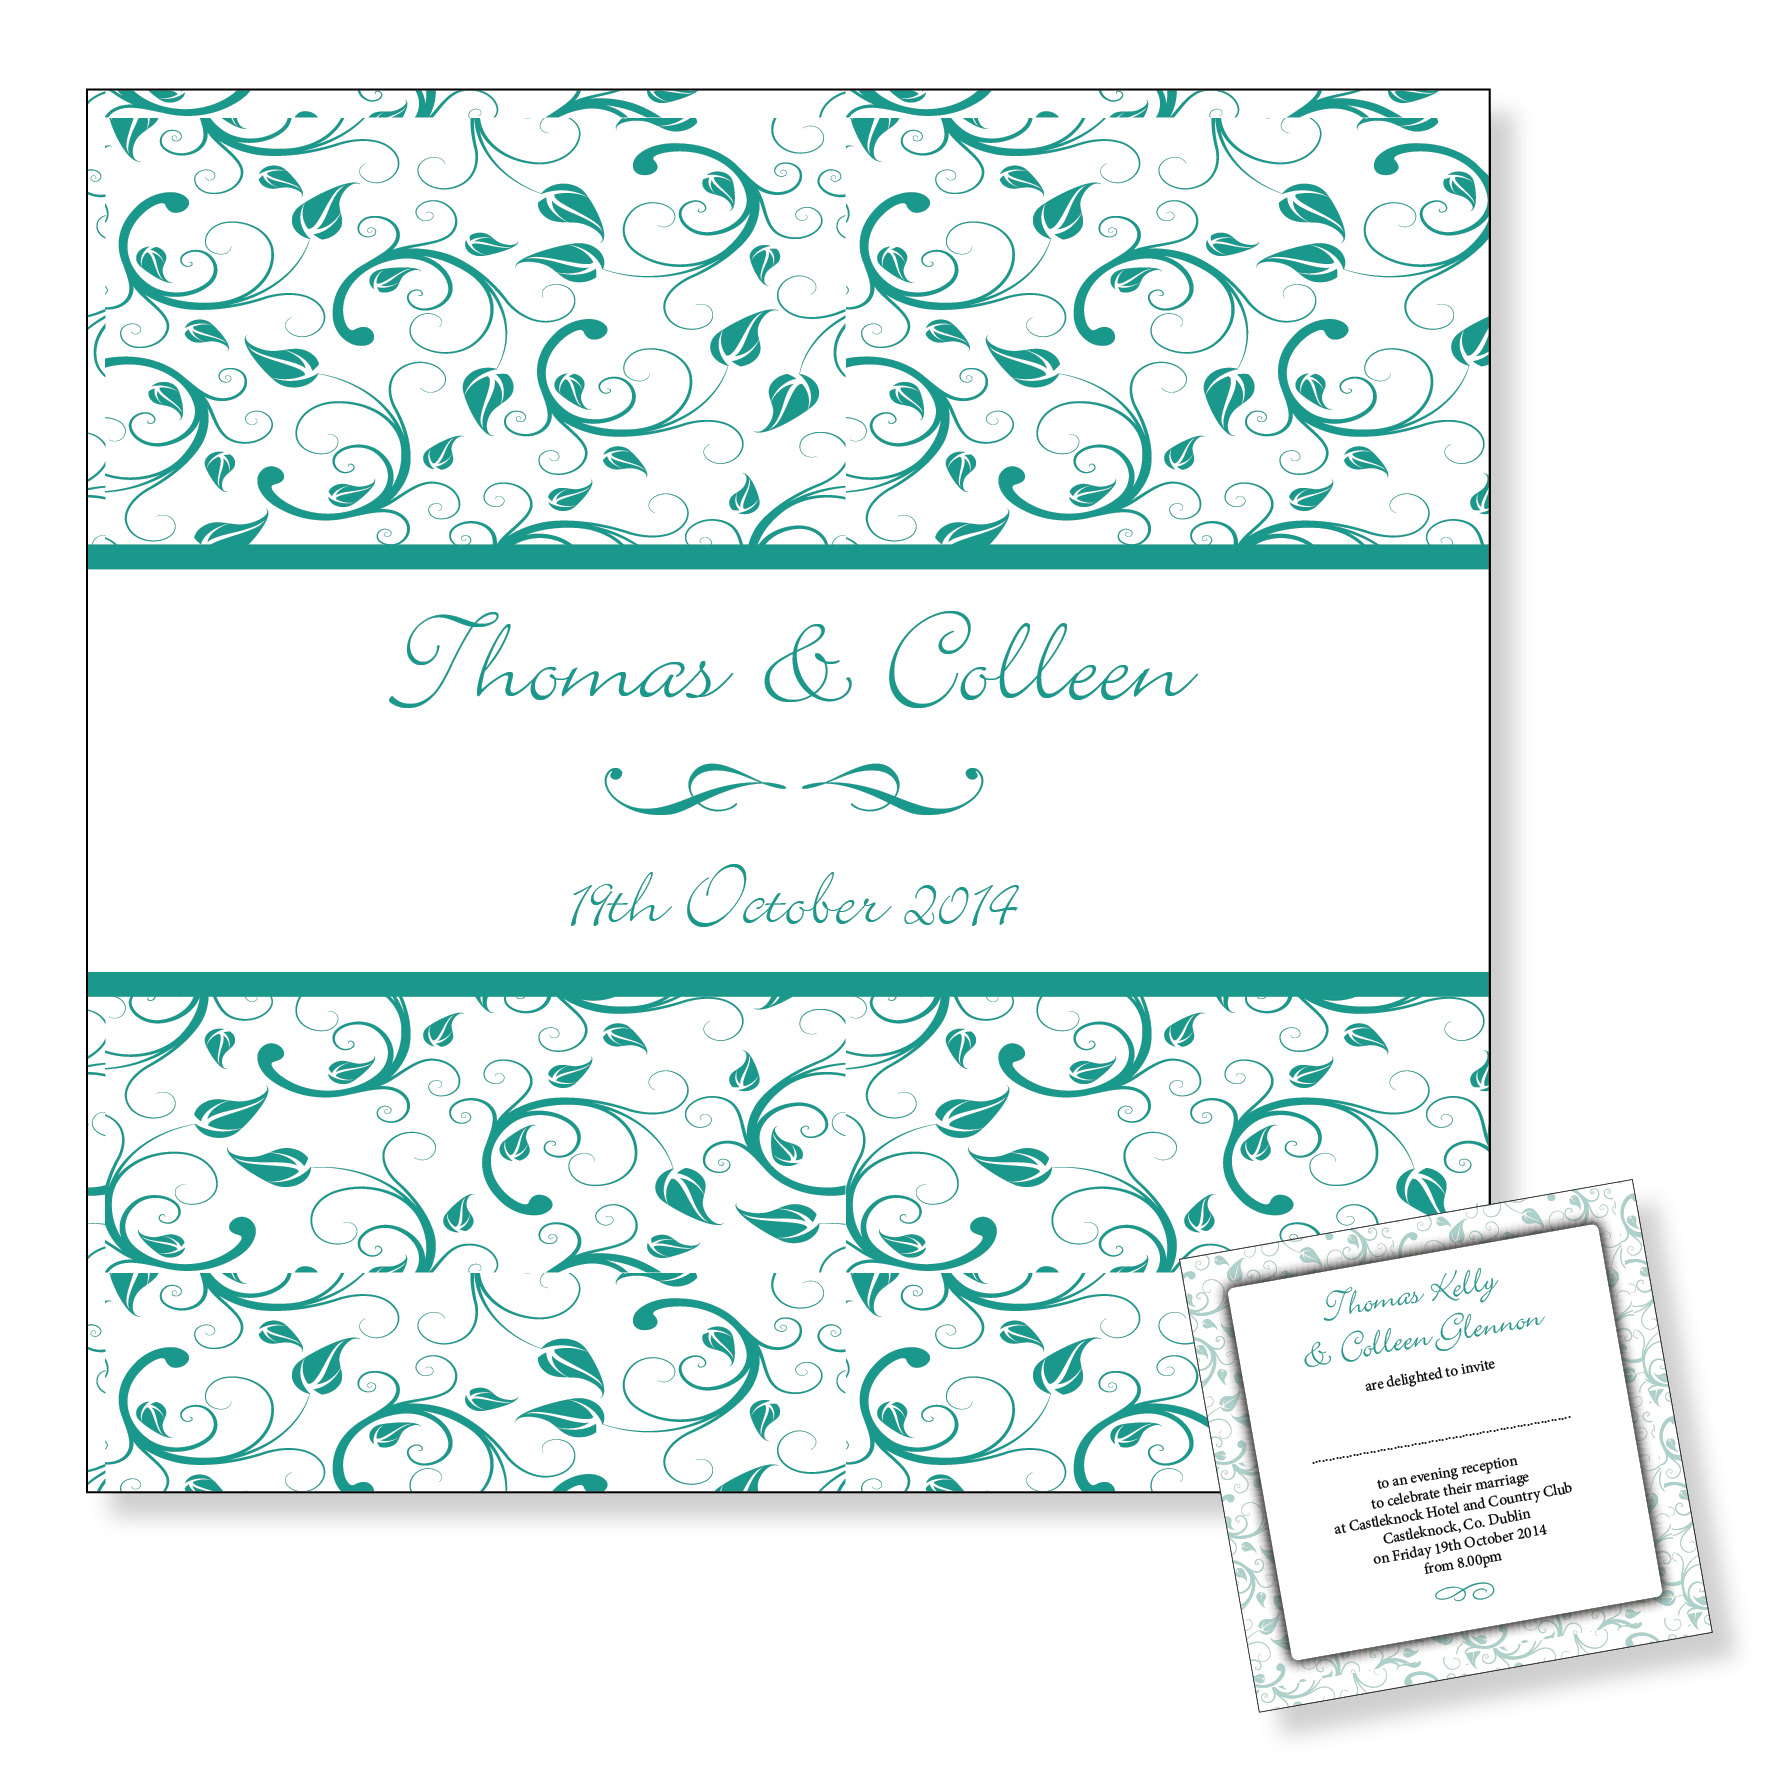 Wedding evening invitation - Turquoise floral